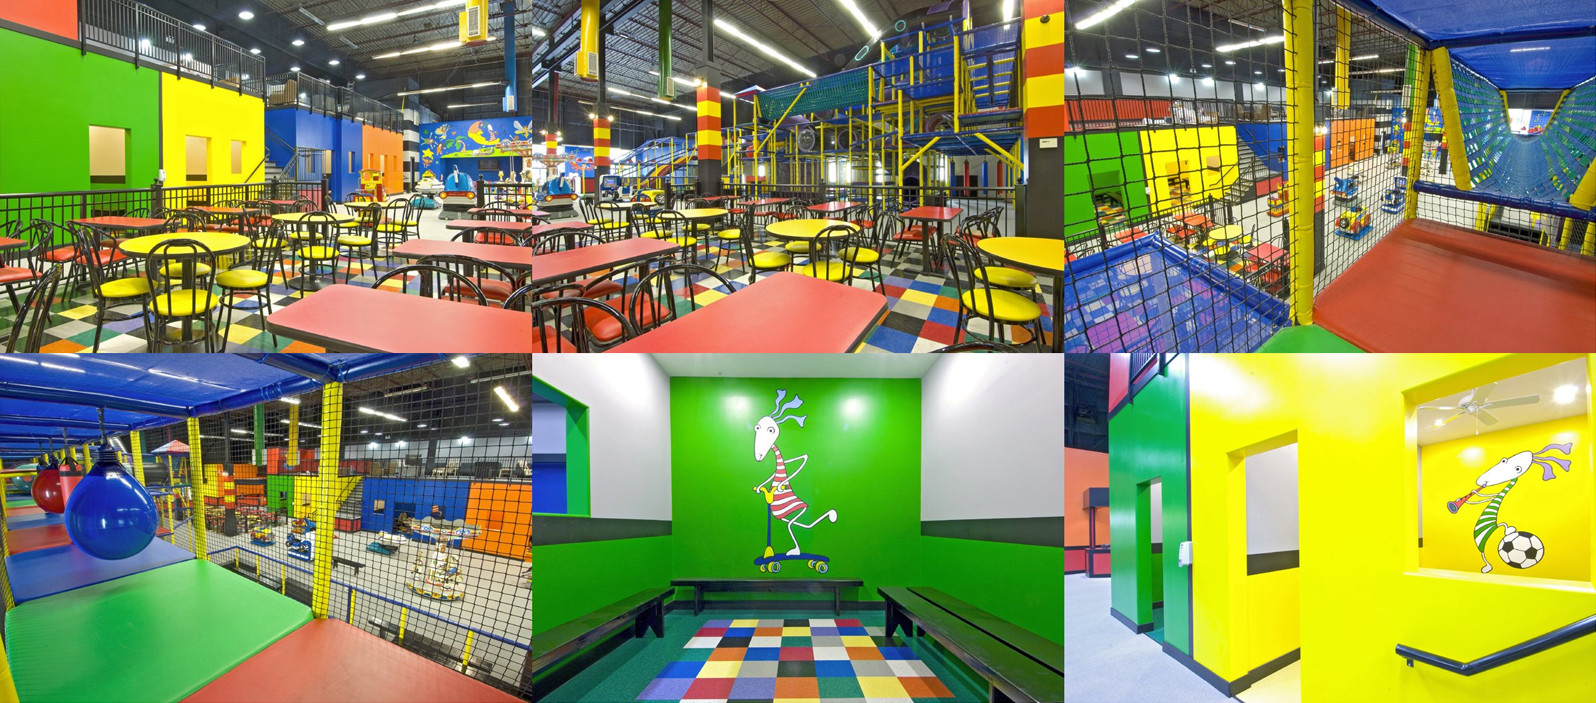 The truly innovative interior design of the 12,000-square-foot space encourages creativity with a range of bright colours used for colour coding areas and rooms, defined by geometric shapes and well balanced with highly artistic wall murals by Ivan Rados. Koko's indoor playground is designed for children 3 months to 12 years old with a well defined area for specific activities including: toddler play area, a free-play soft area, semi-private rooms, cafe and dining area, and even a parent's lounge placed on the open, upper balcony. The gourmet cafe bar is outstanding, offering an array of wholesome choices of healthy kid's meals along with an adults menu including coffee, drinks, snacks and delicious salads. At Koko's Center, children are provided with the opportunity to participate in various activities, which promote physical fitness, socialization, creative expression and safety awareness. Thoughtful design placed an emphasis on the layout and a targeted activity mix, allowing children of different ages and abilities to maneuver comfortably from activity to activity. All around visibility, strict definition of spaces, designation for age appropriate activities, grand spatial comfort with colour-coded traffic flow, multiple play modalities which accessibility for all abilities, internal and external barriers, and secluded yet overlooking parents lounge are used as fundamental principles and key guidelines in designing Koko's indoor playground.